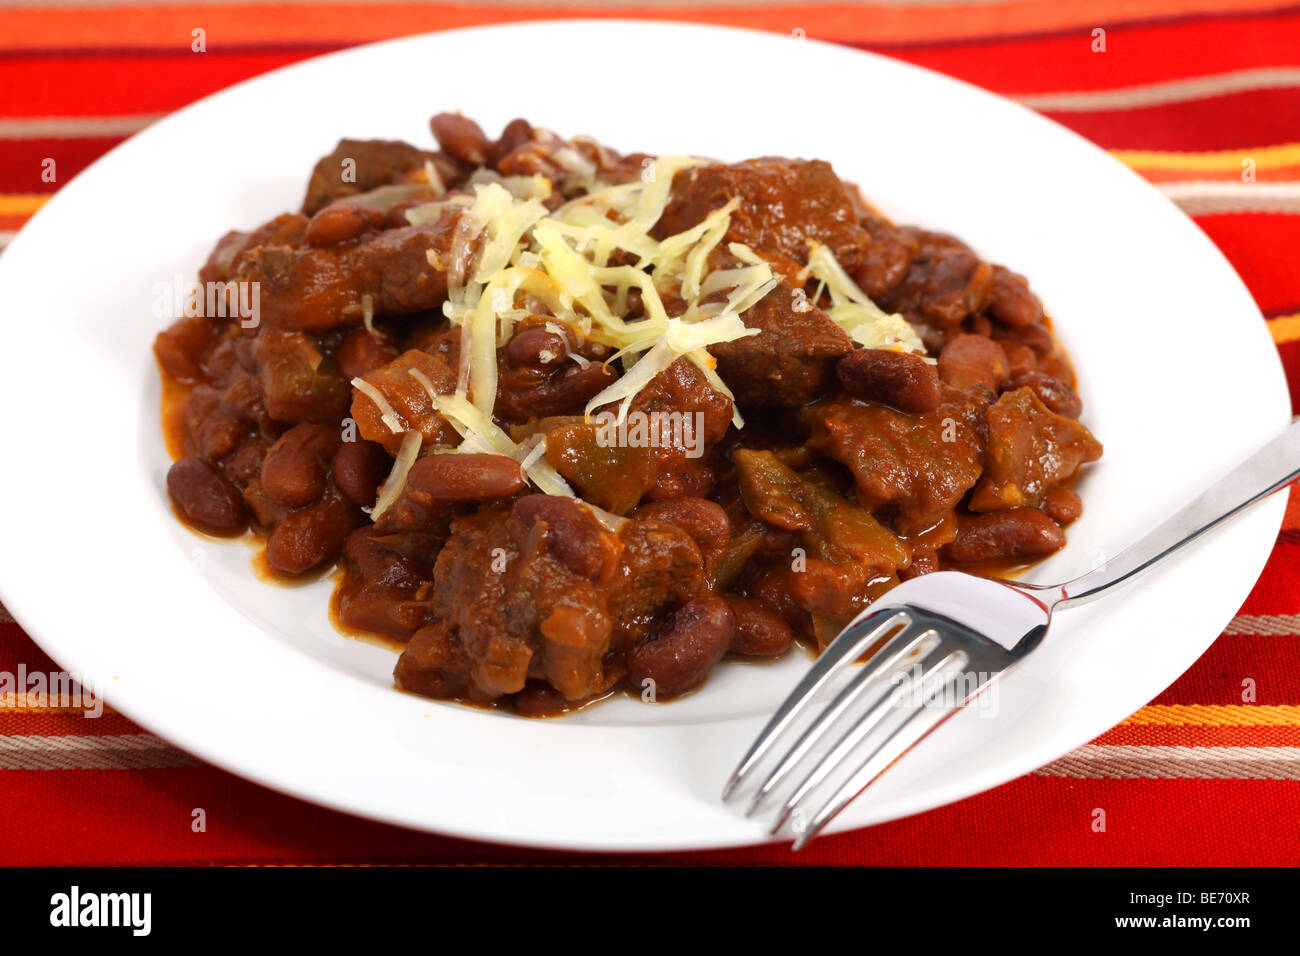 A plate of chili con carne made with red kidney beans and lumps of steak, topped with  cheddar cheese, with a fork Stock Photo